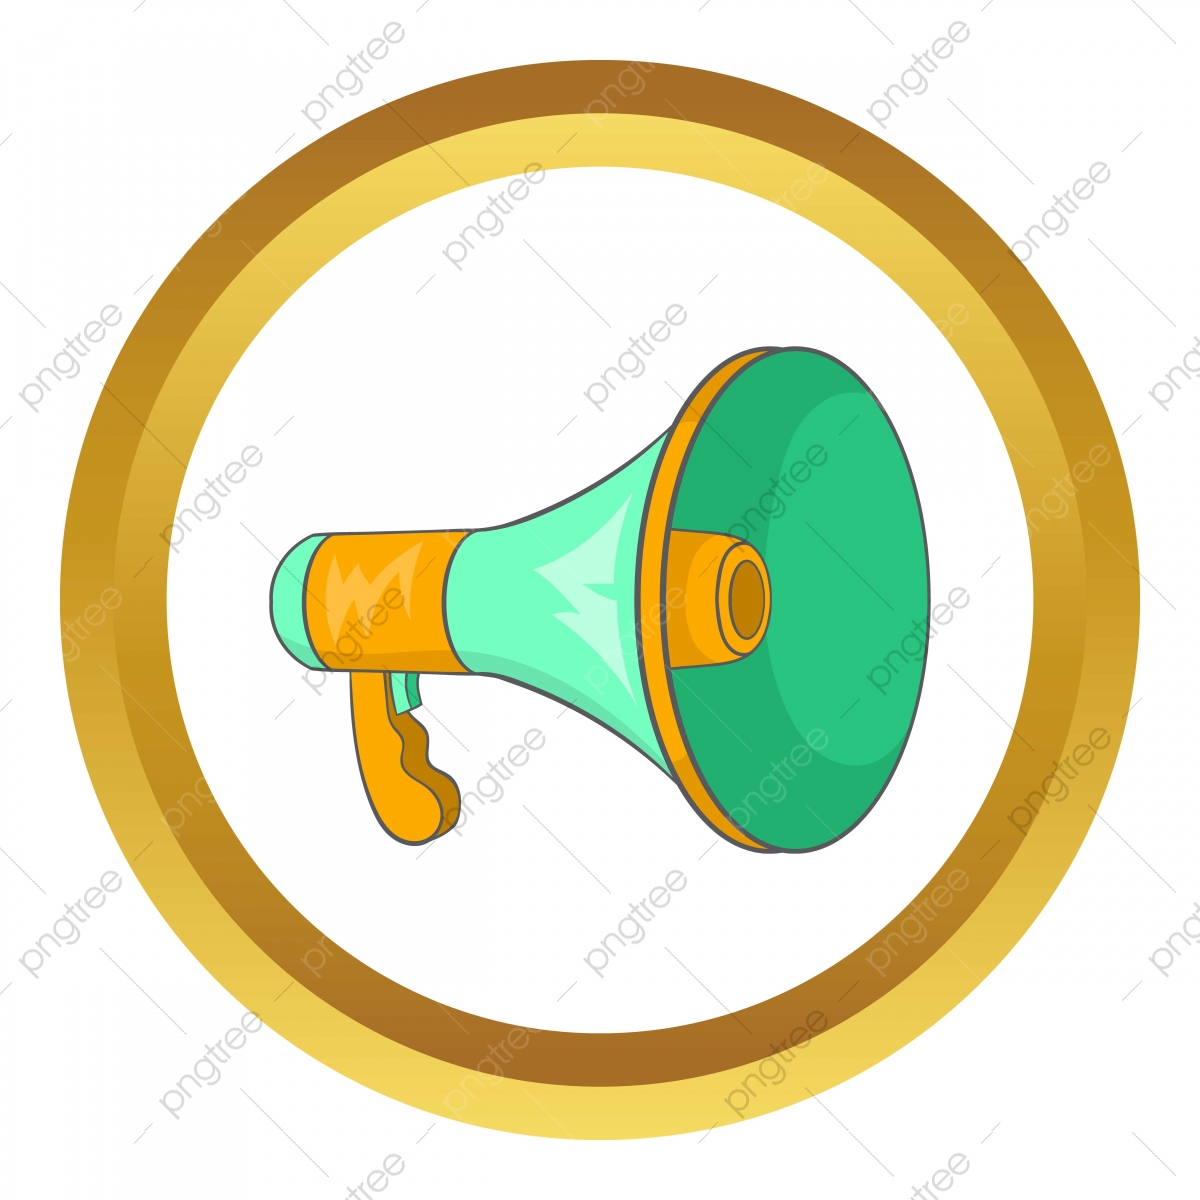 green loudspeaker vector icon green icons loudspeaker icons cartoon png and vector with transparent background for free download https pngtree com freepng green loudspeaker vector icon 5196660 html